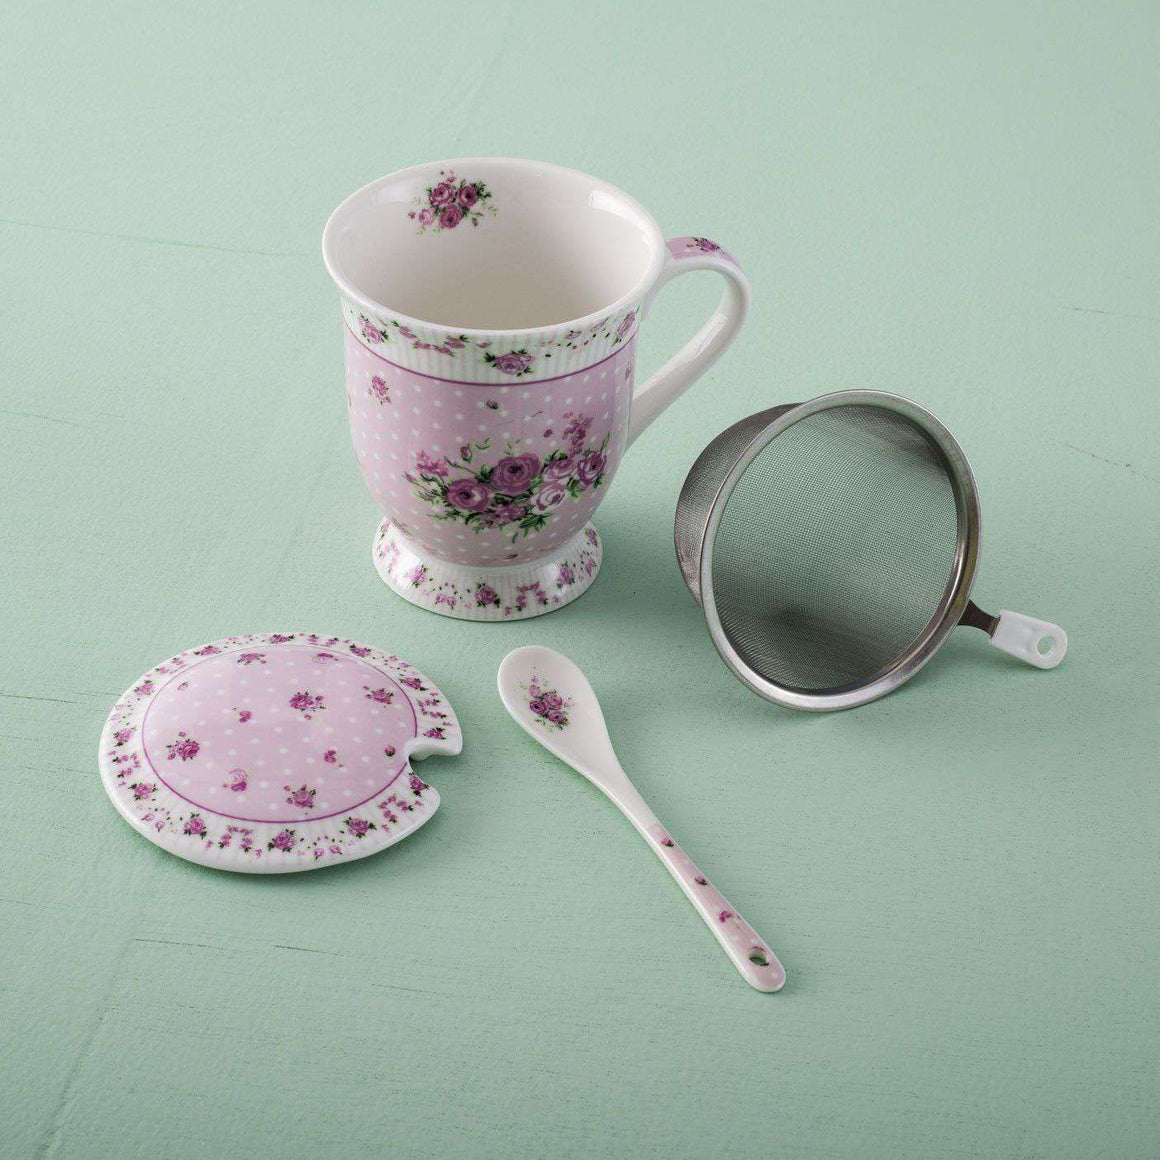 'Garland' Pink Ceramic Mug with Metal Sieve and Lid